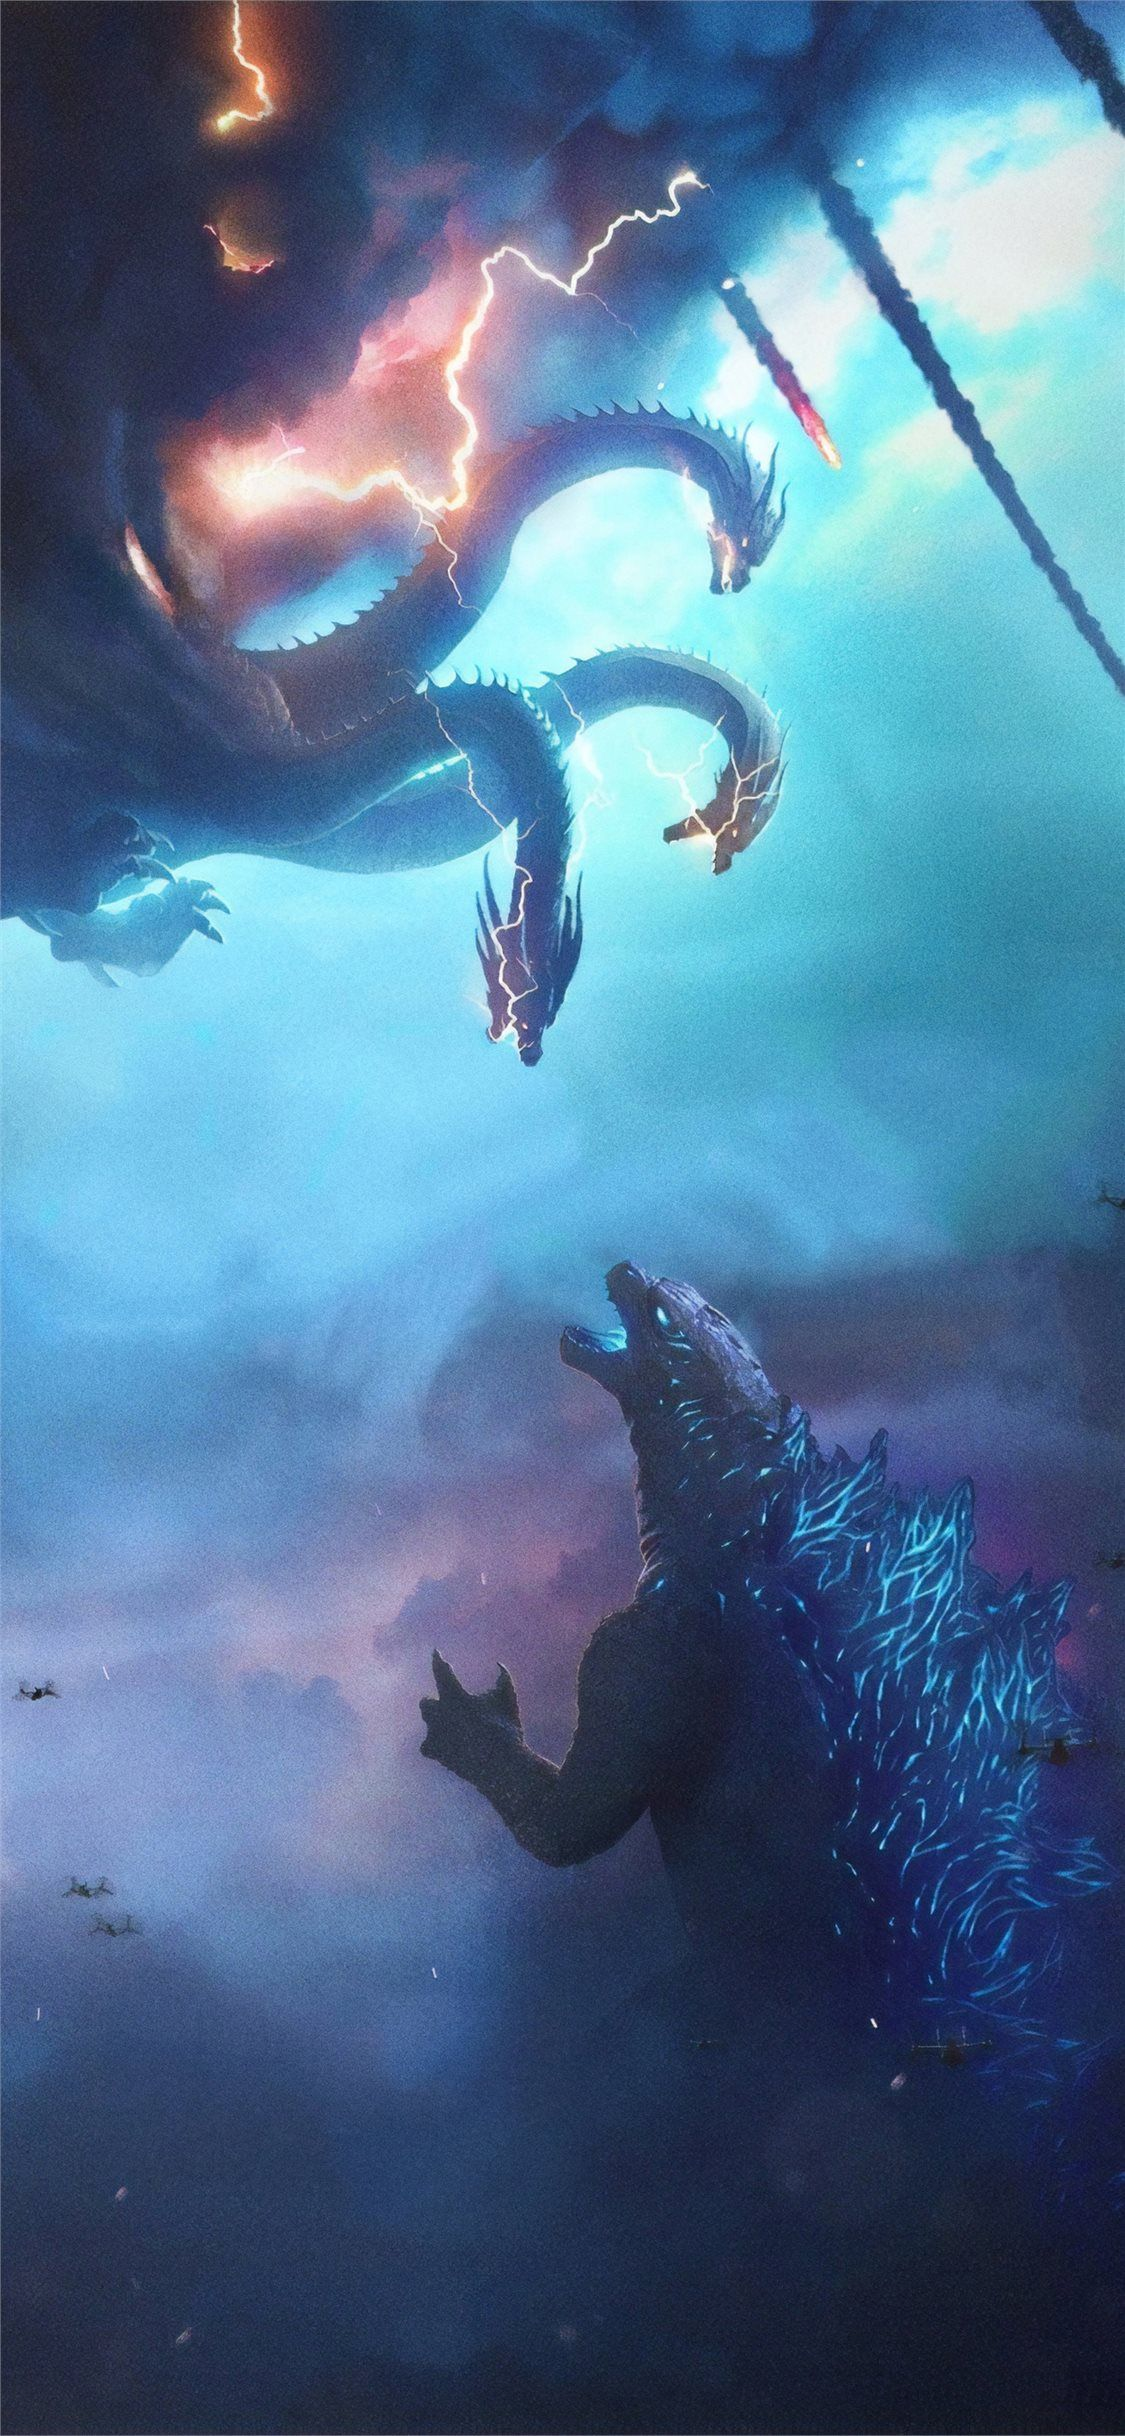 Godzilla King Of The Monsters Movie Poster Godzilla Wallpaper Godzilla Vs King Ghidorah Godzilla Tattoo